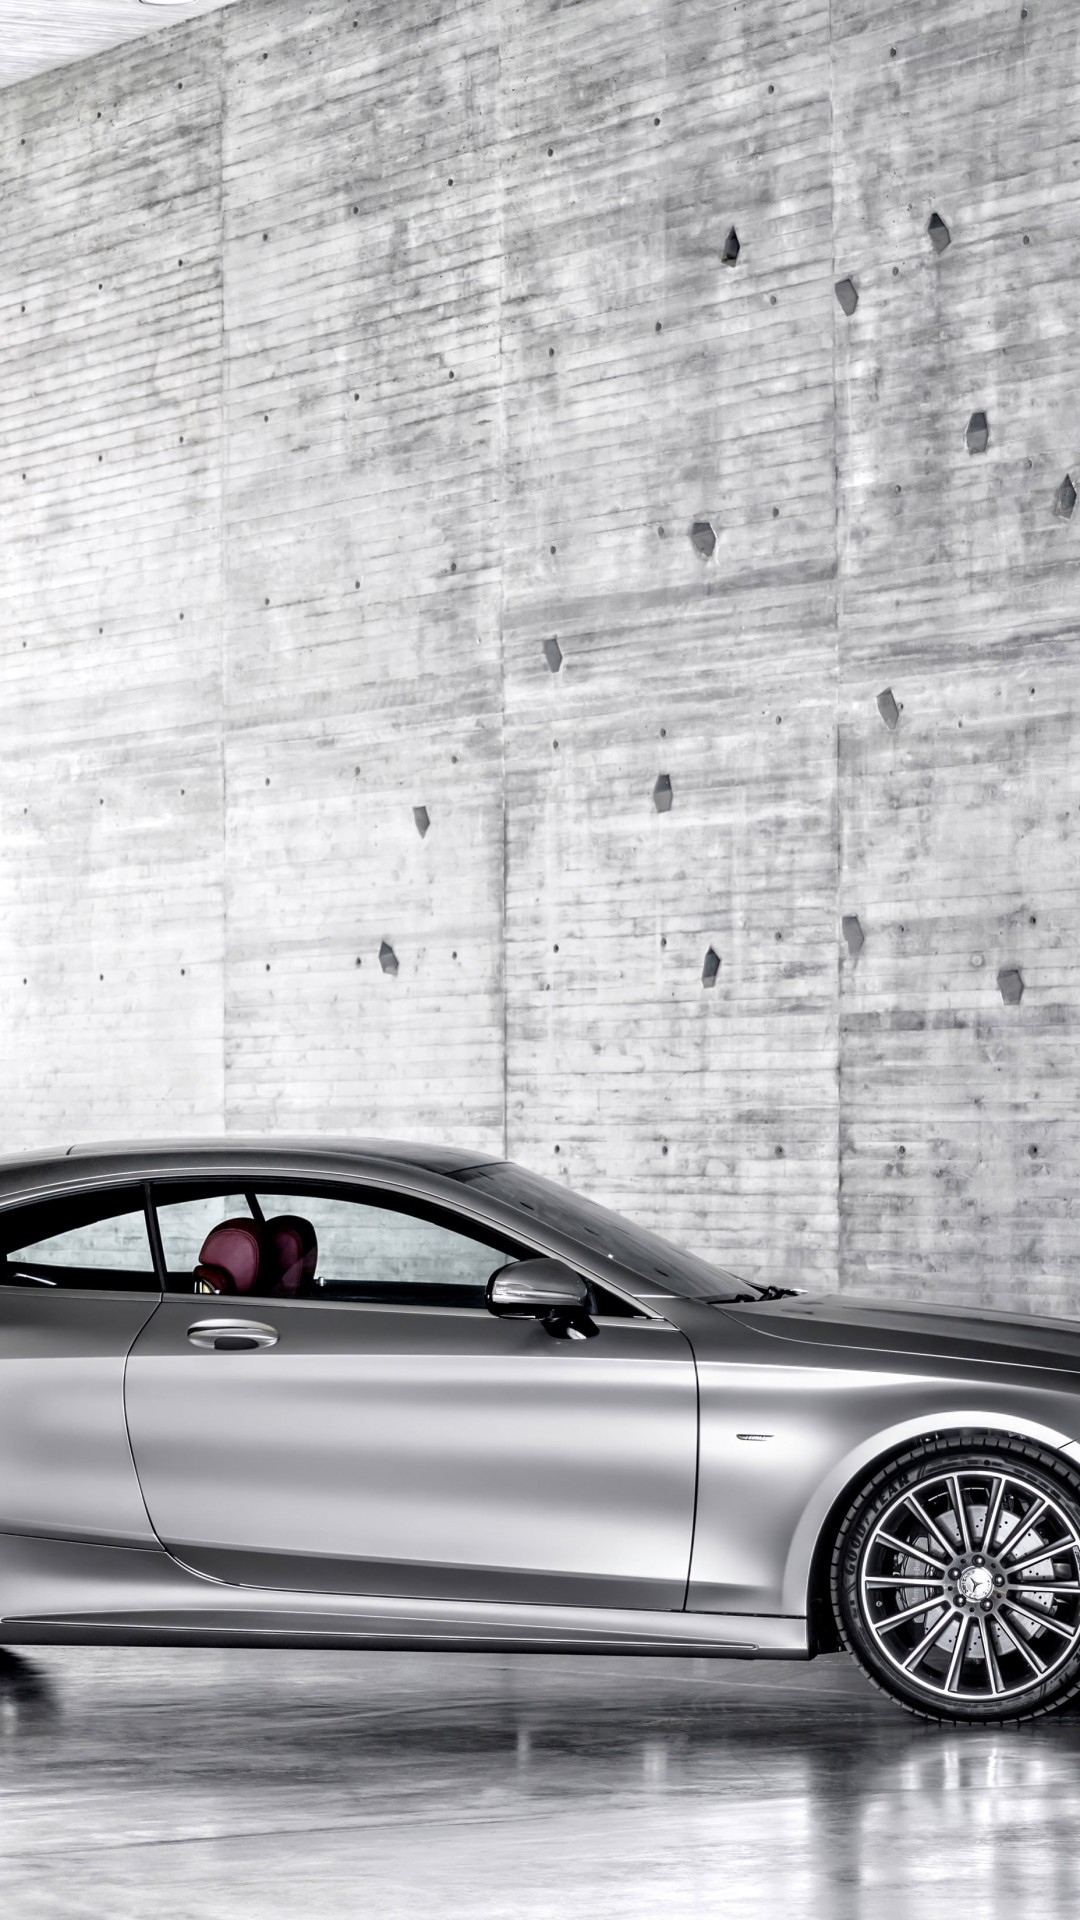 2015 Mercedes-Benz S-Class Coupe Wallpaper for Google Nexus 5